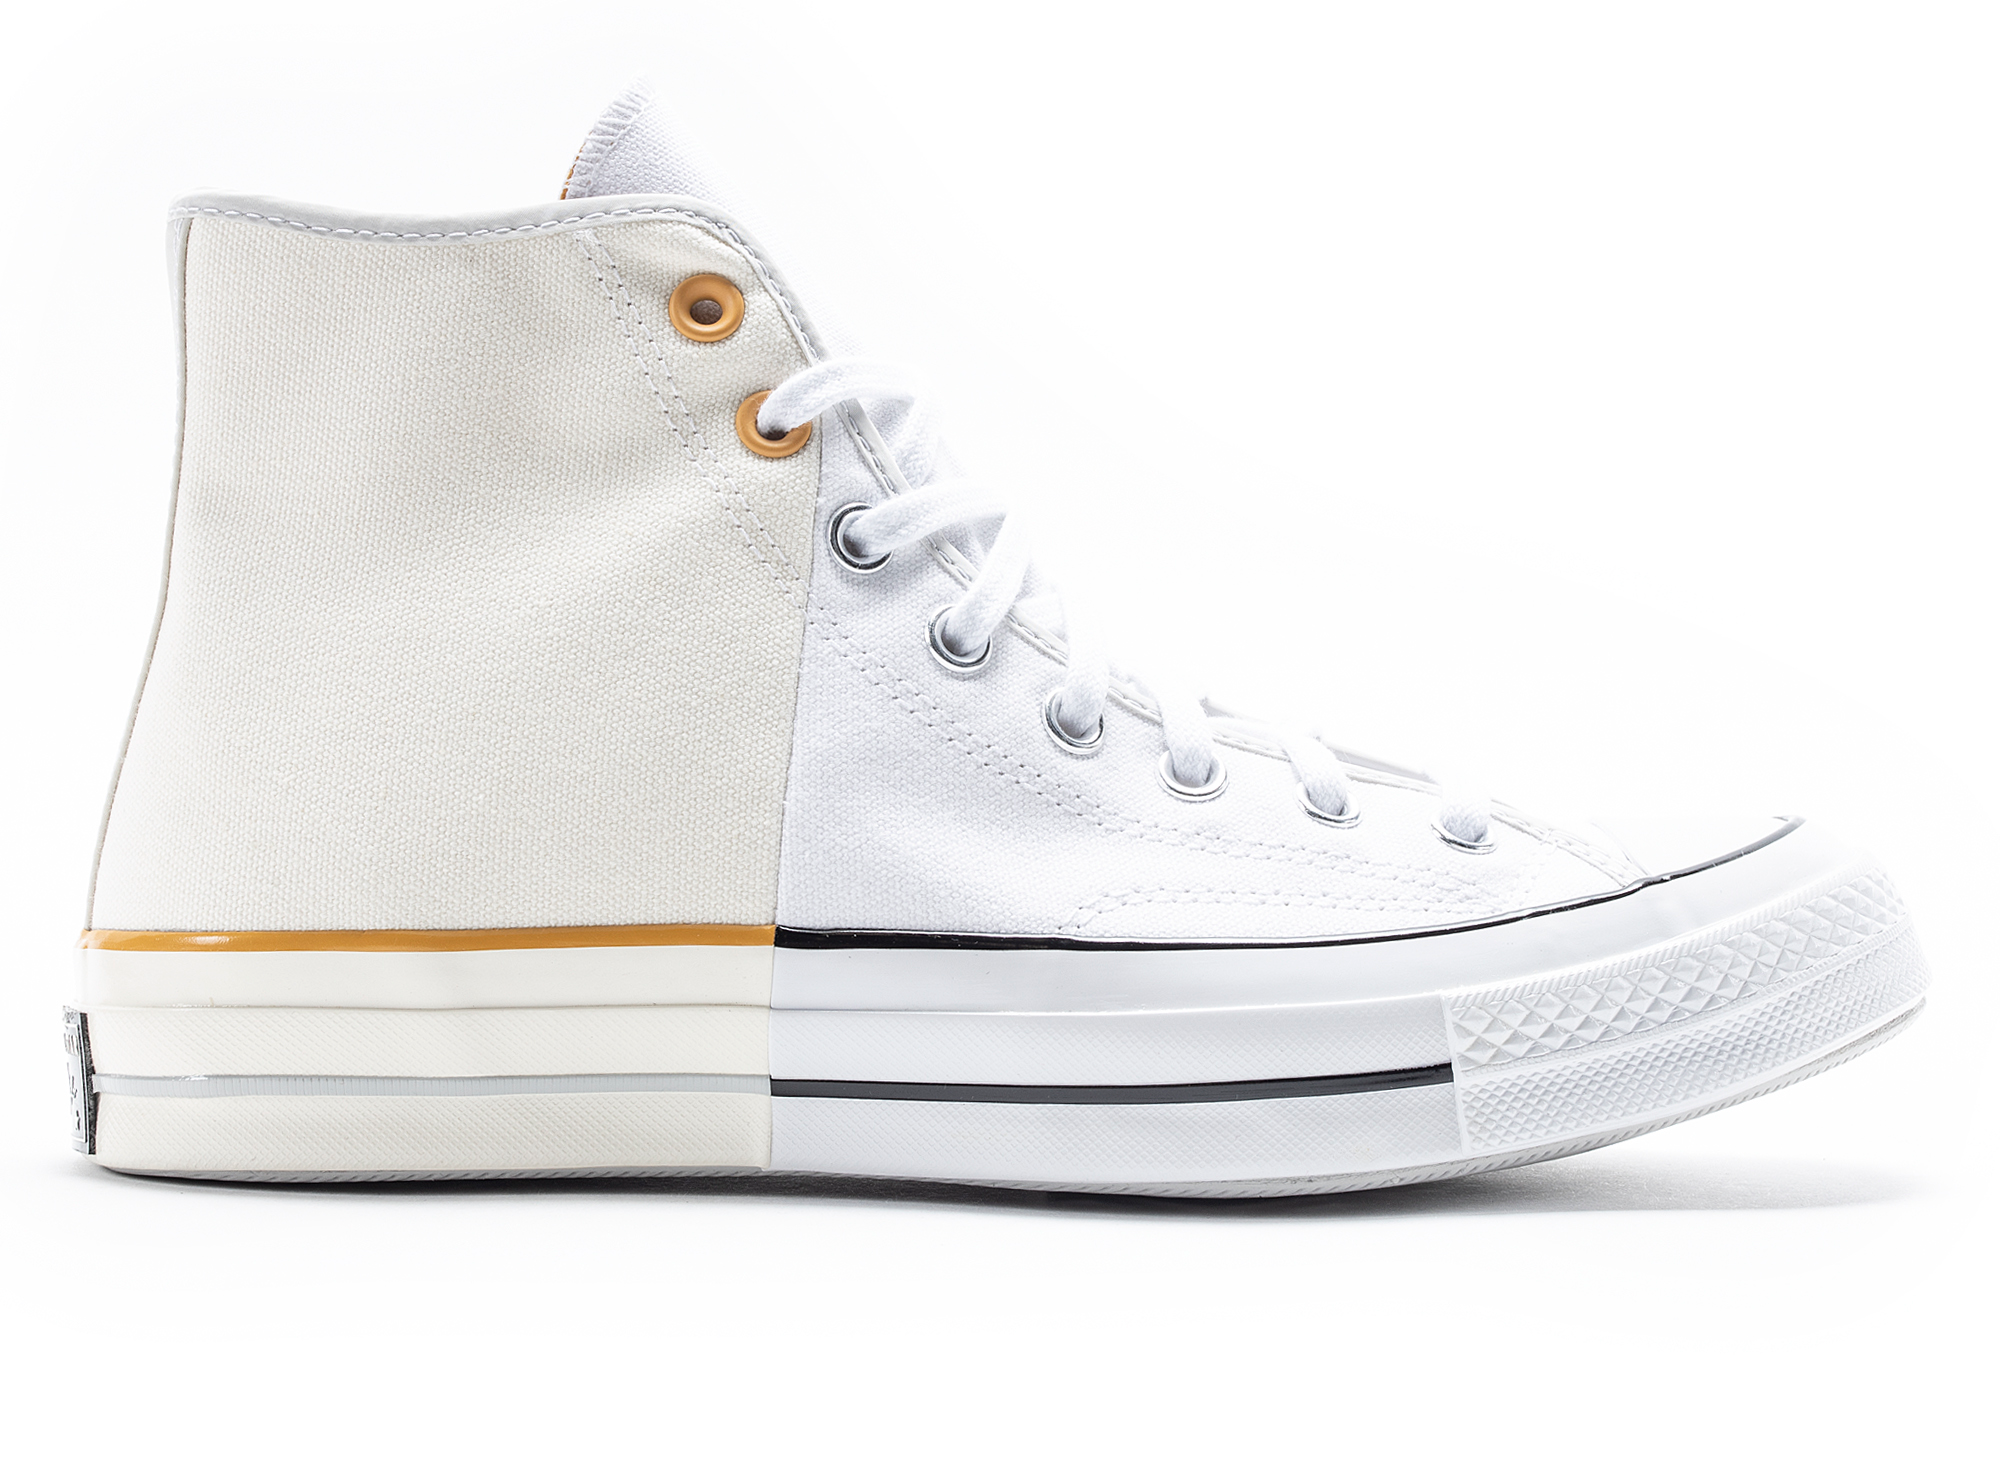 Chuck 70 Hi '1980's Pack' in White